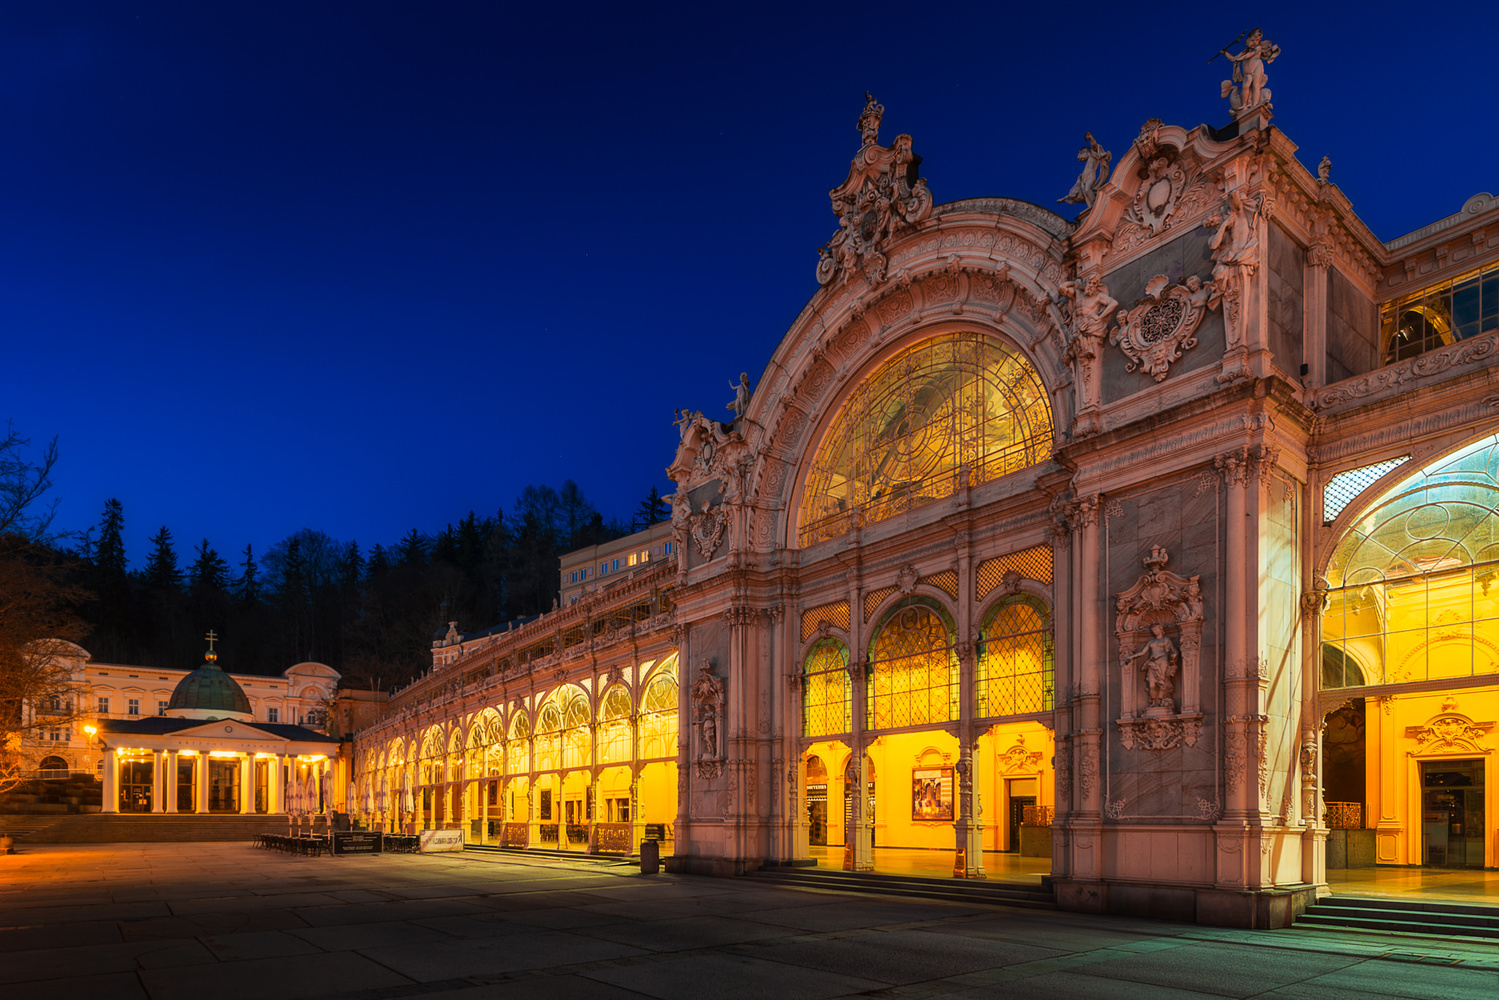 The Colonnade at Night | Mariánské Lázně, Czech Republic by Nico Trinkhaus